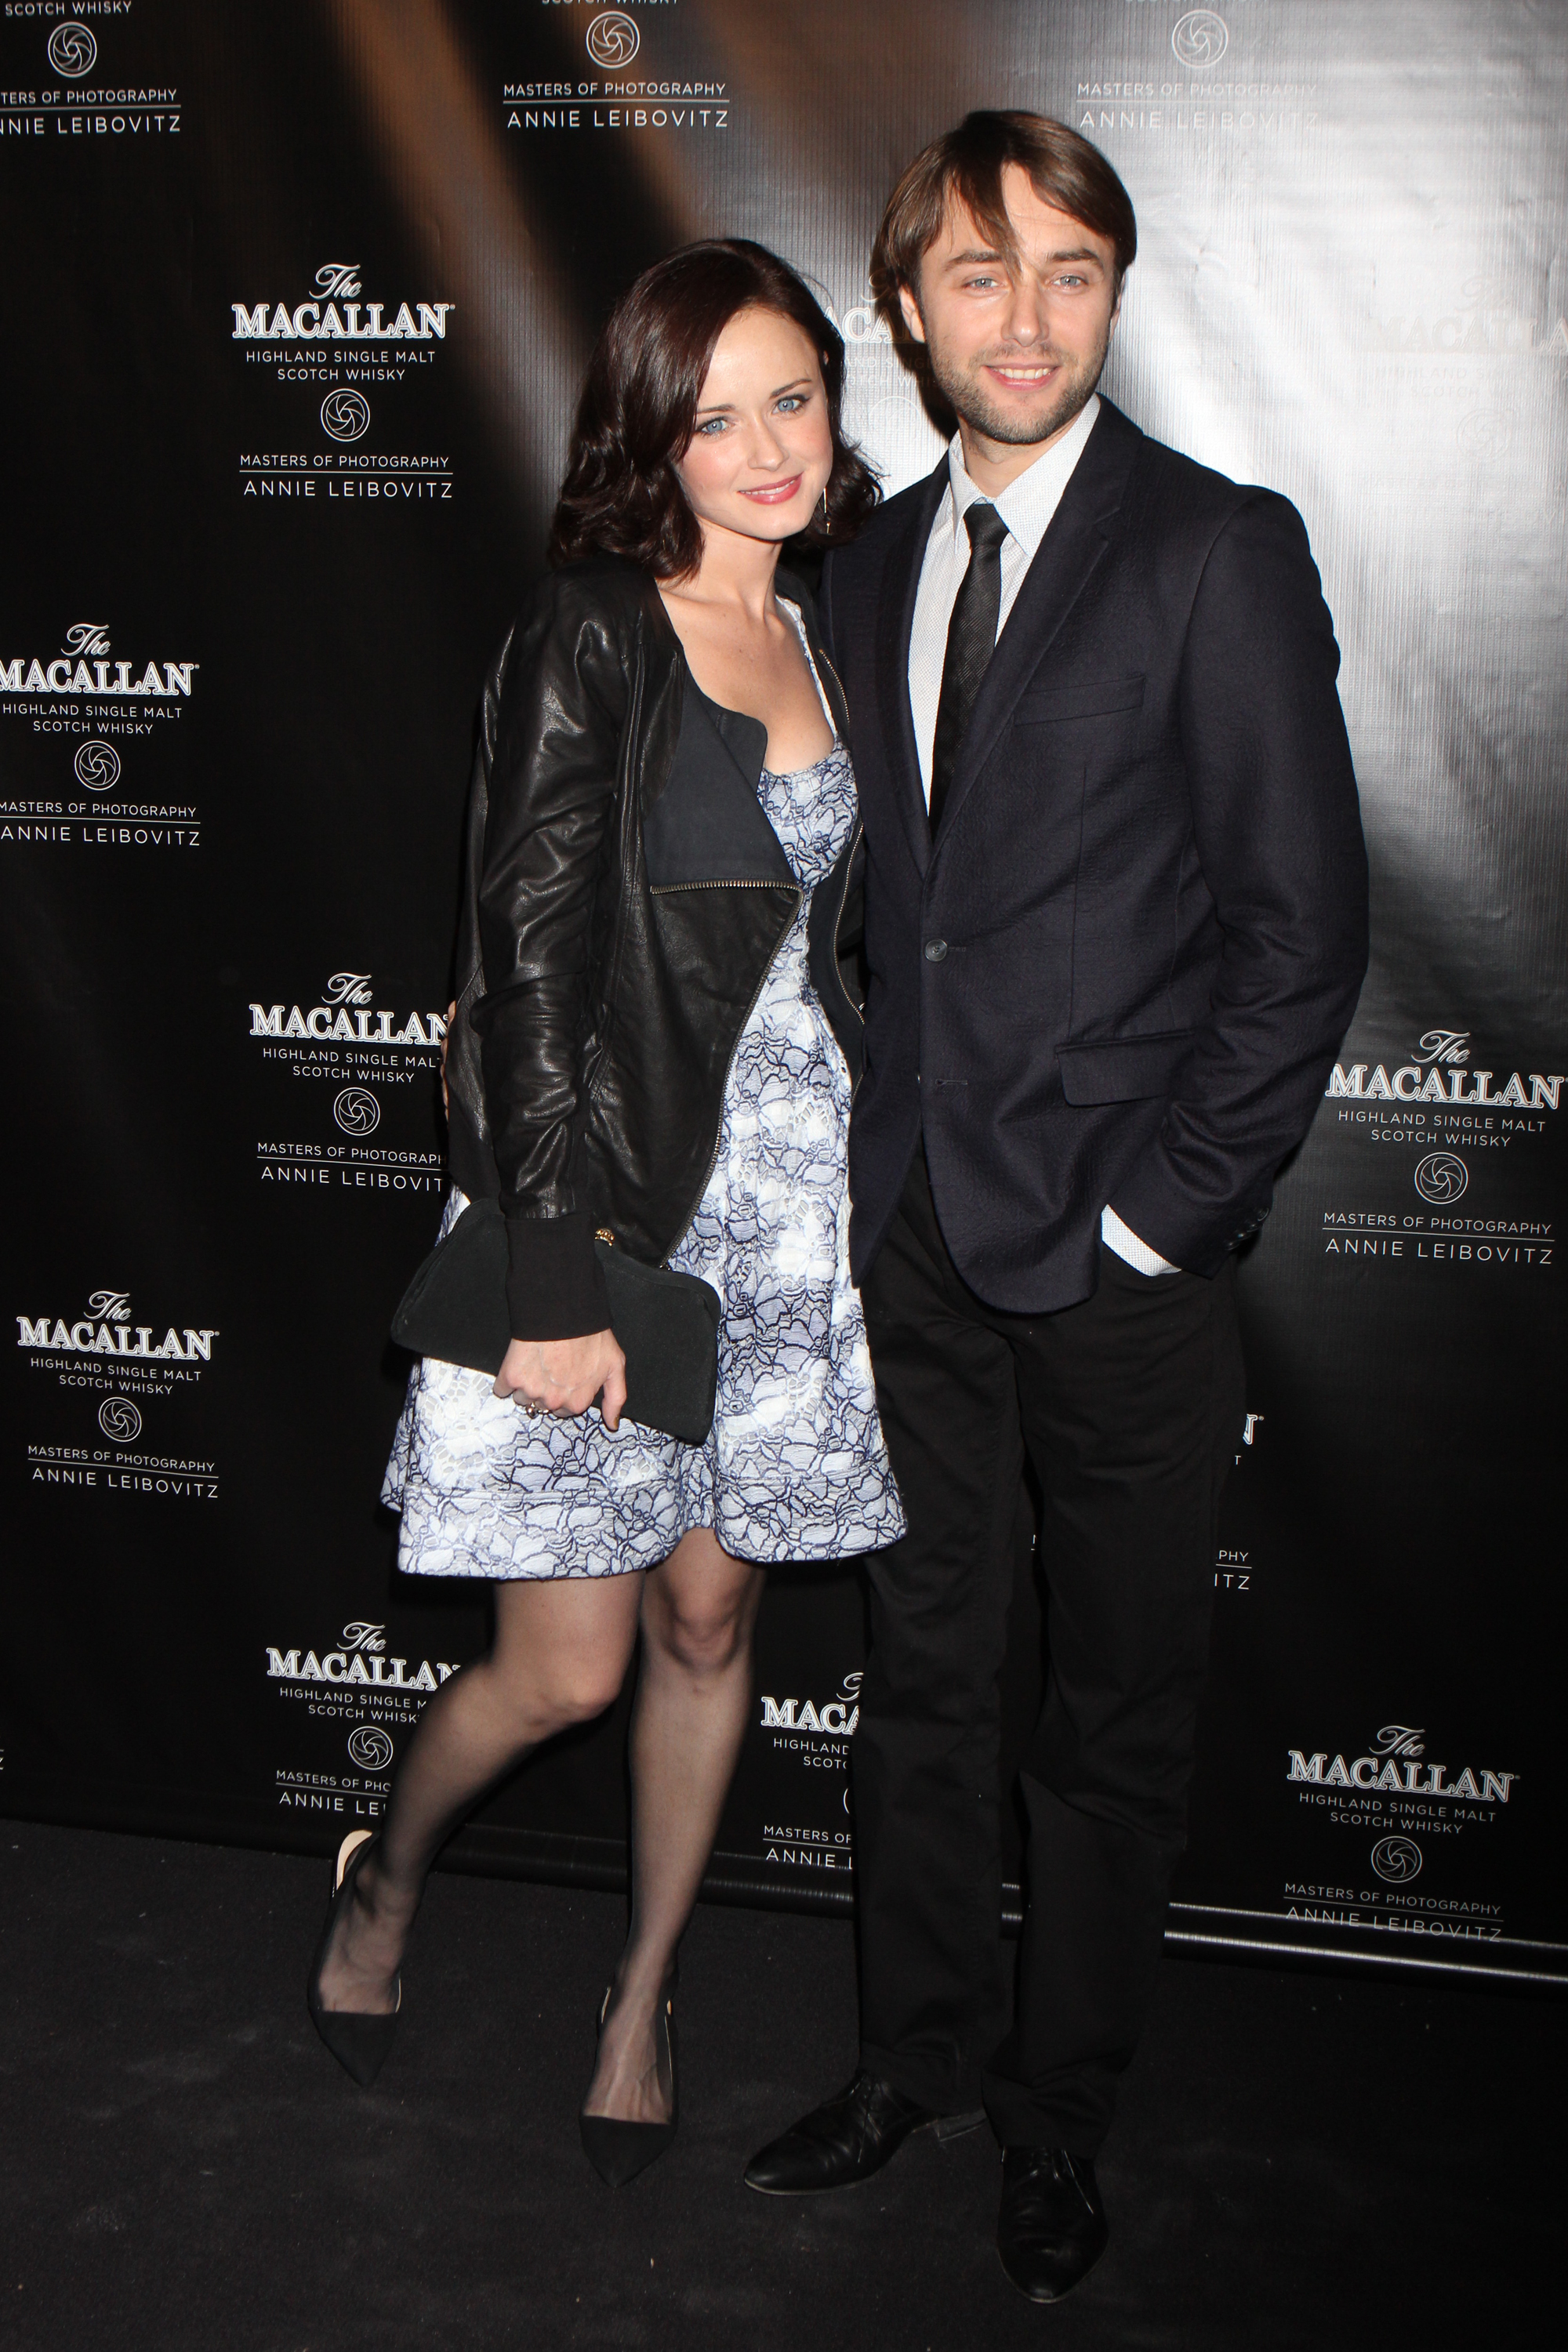 Alexis Bledel - The Macallan Masters Of Photography Series Launch - NYC - 101012_007.jpg